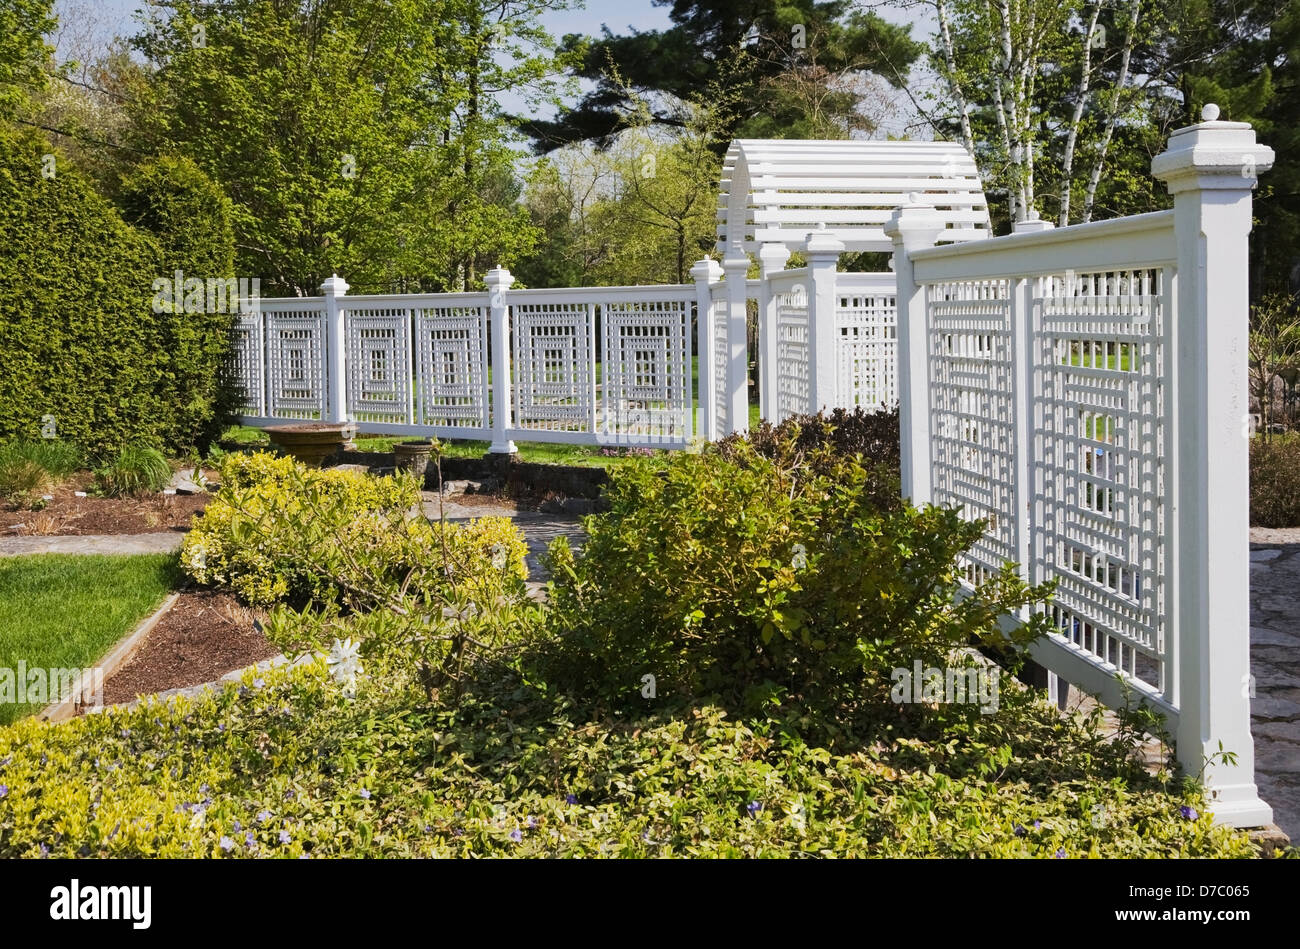 A White Wooden Fence With Trellis In A Landscaped Back Yard Garden In  Spring;Quebec Canada